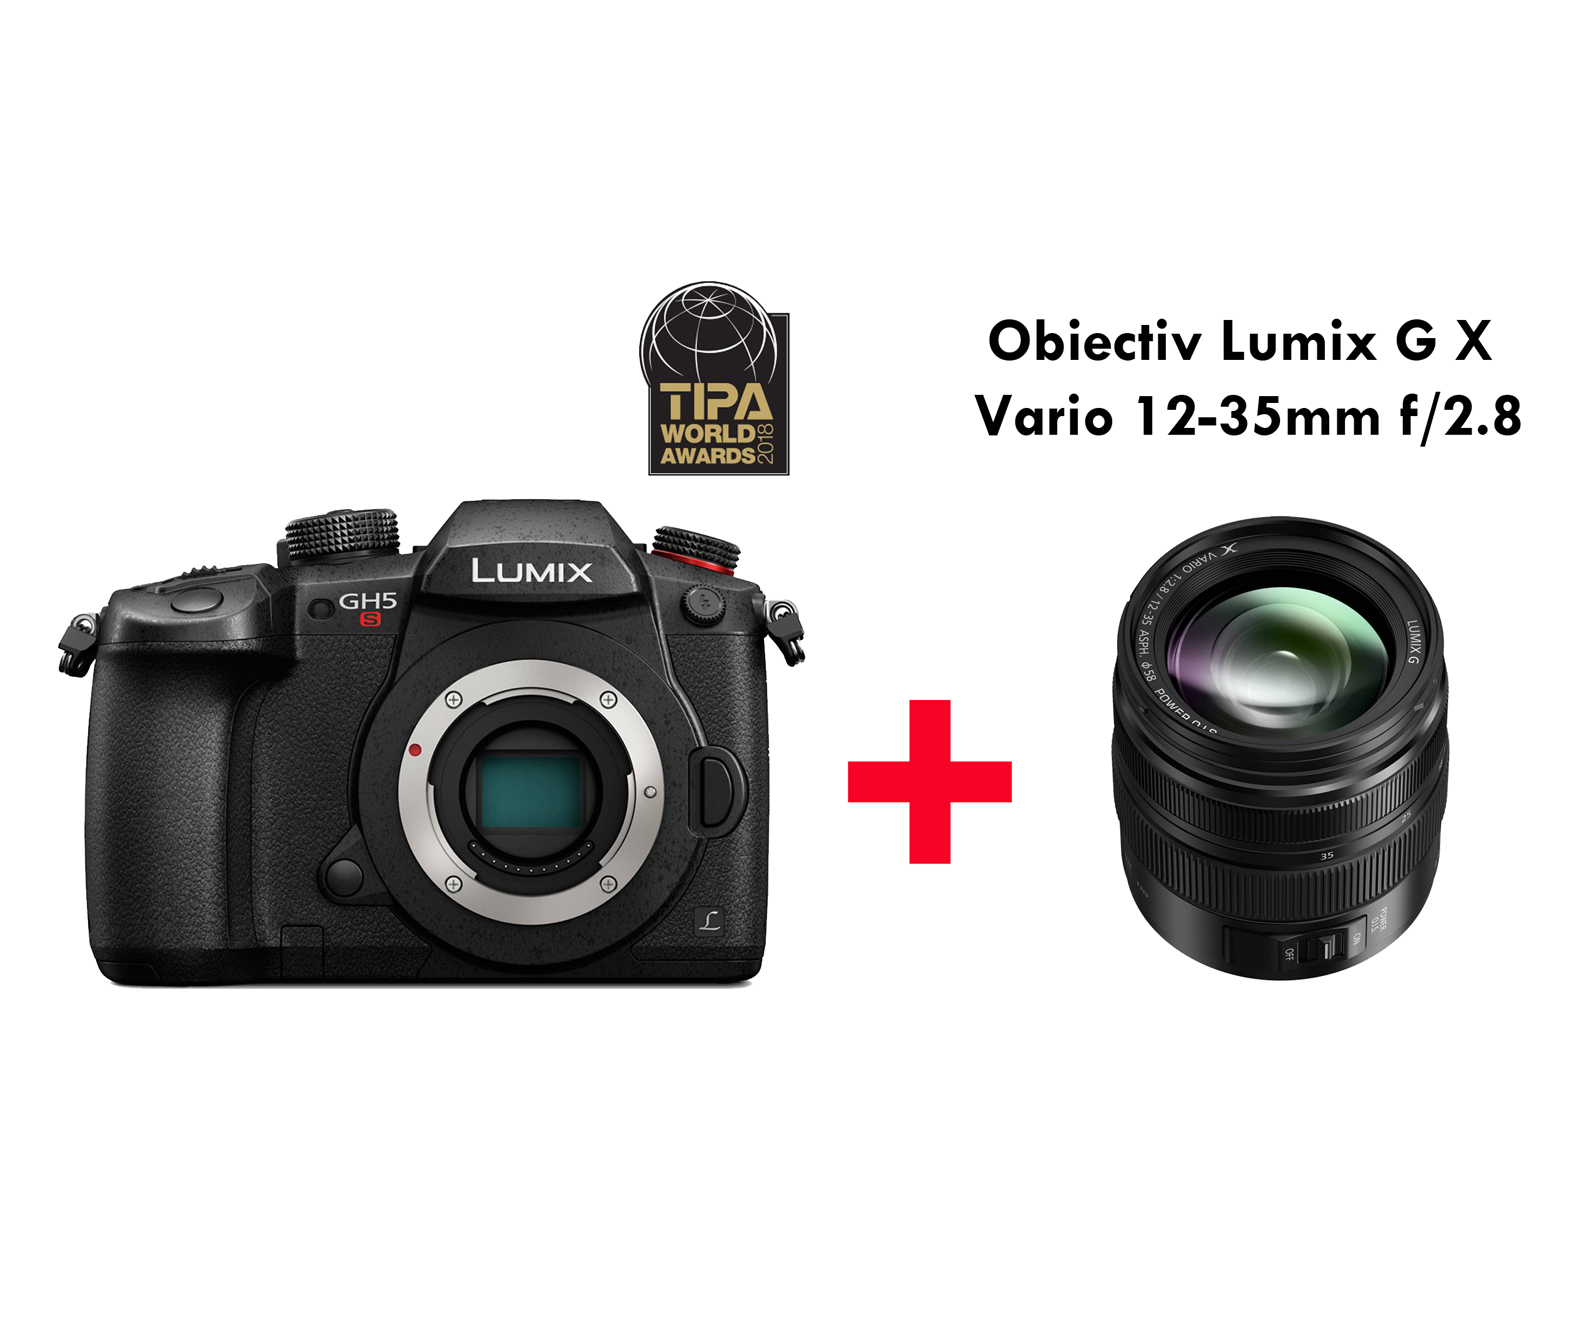 KIT PANASONIC LUMIX DC-GH5S + OBIECTIV PANASONIC LUMIX G X Vario 12-35mm f/2.8 II ASPH. POWER O.I.S.